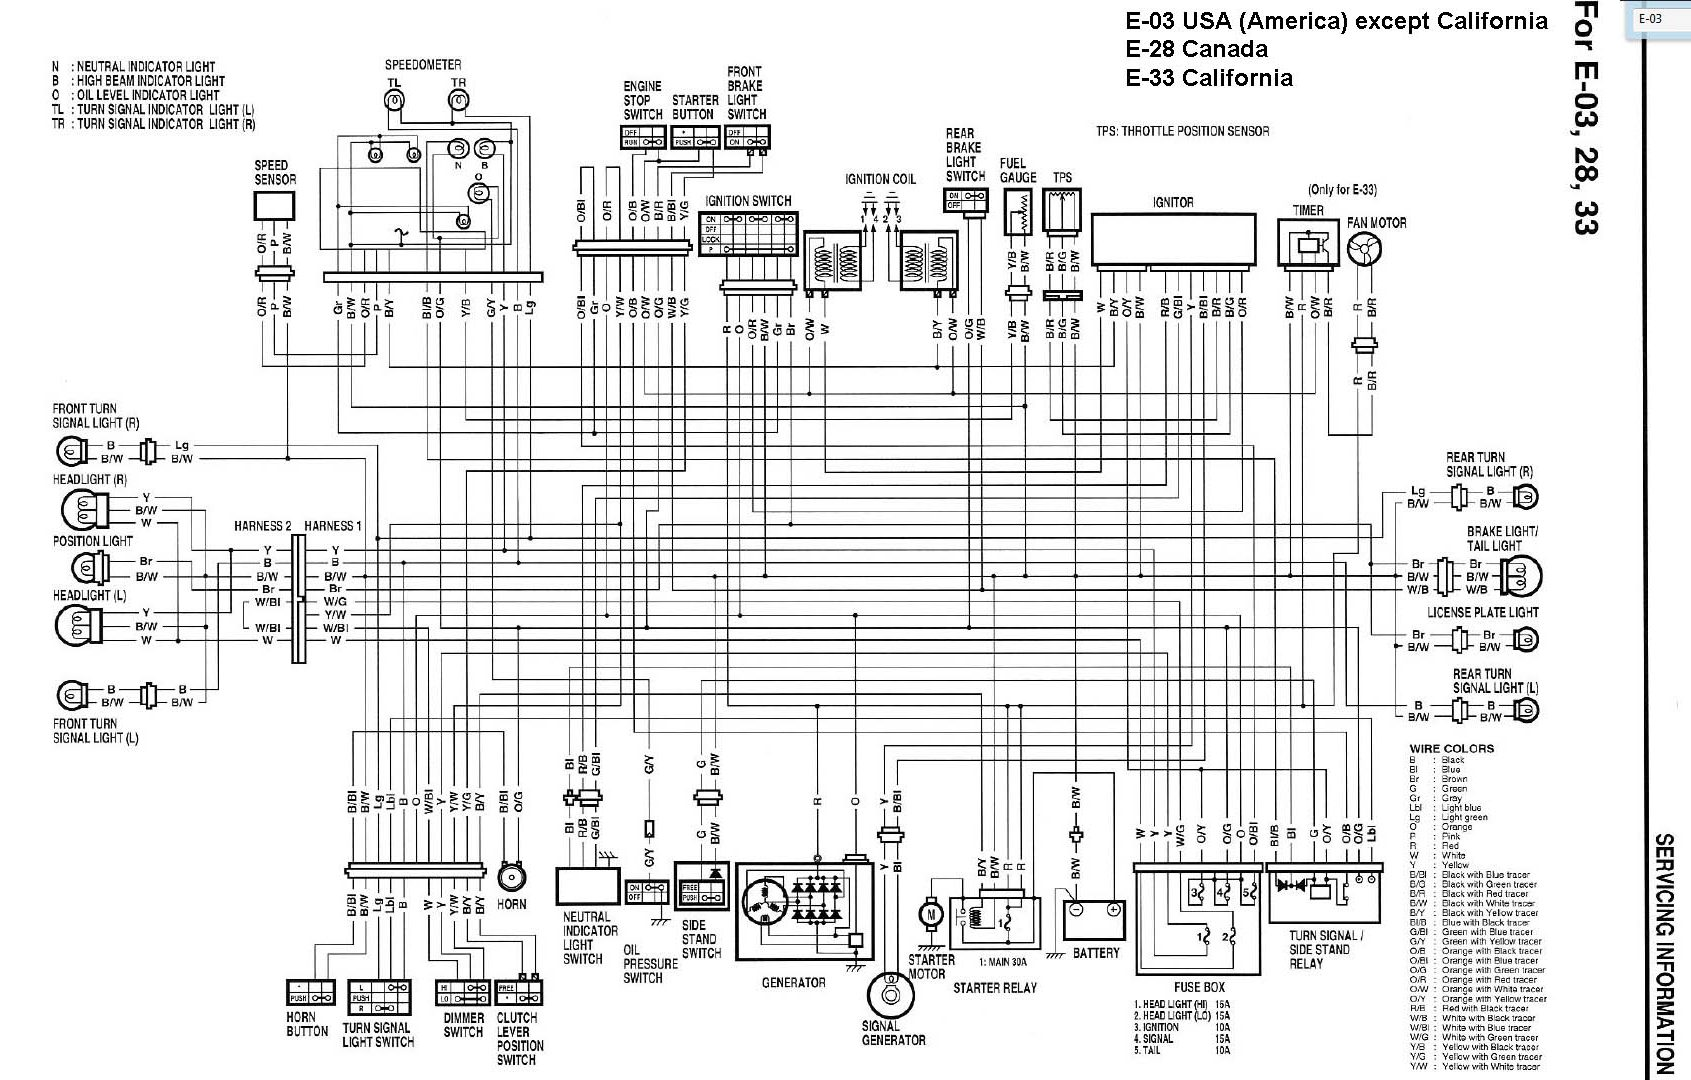 2002 Gsx 750 Wiring Diagram Another Blog About Ford 2310 Suzuki Intruder Vl 1500 Ducati 748